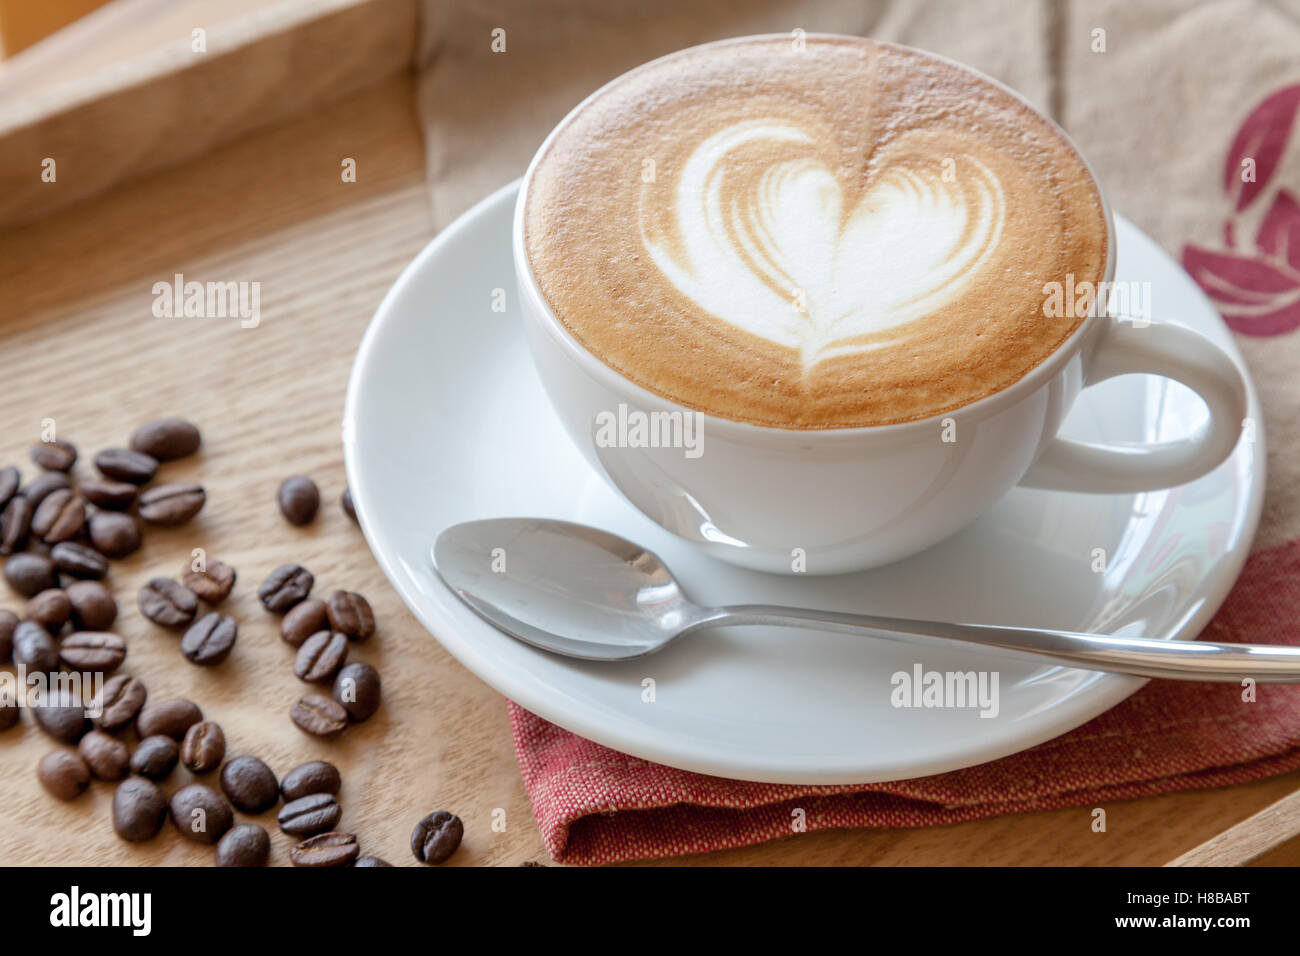 Coffee Latte Coffee Cup Of Cafe Latte With Heart Latte Art On Top Stock Photo